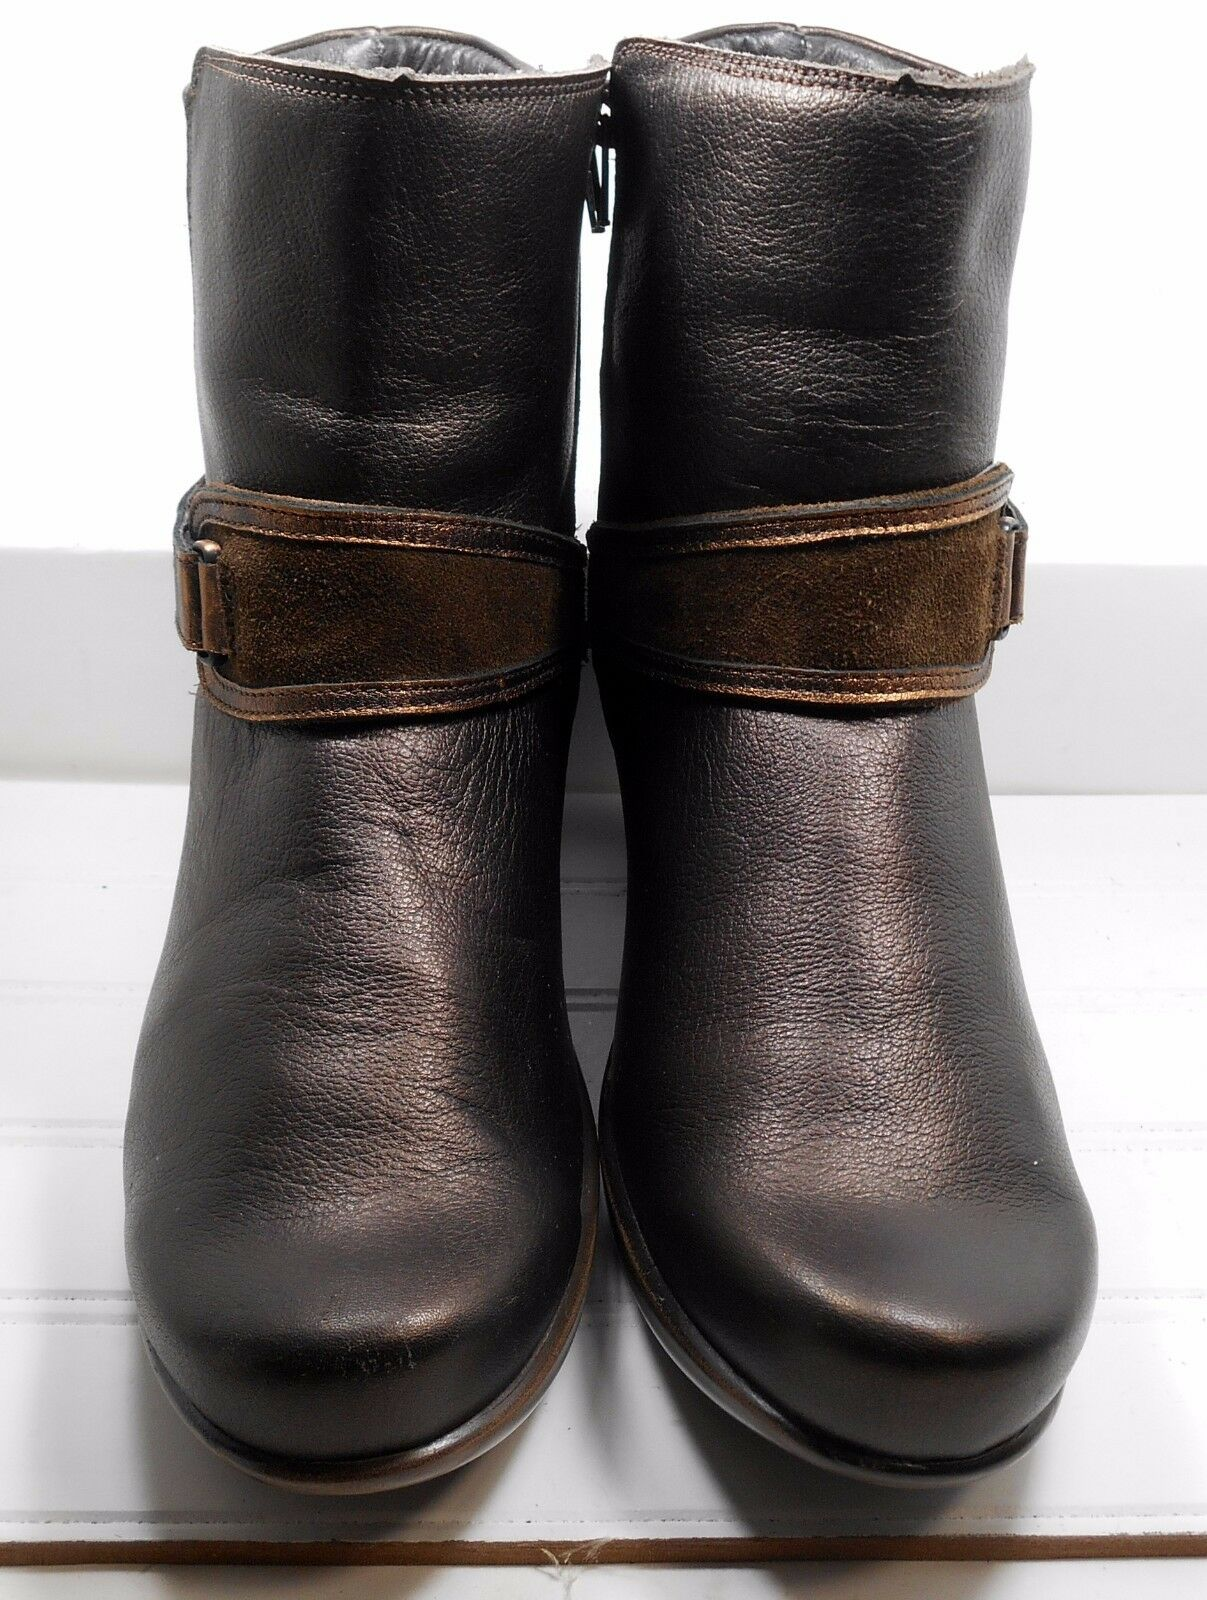 NAOT Godiva Bronze Ankle Boots Comfort Strap US 10 10.5 Light Wear